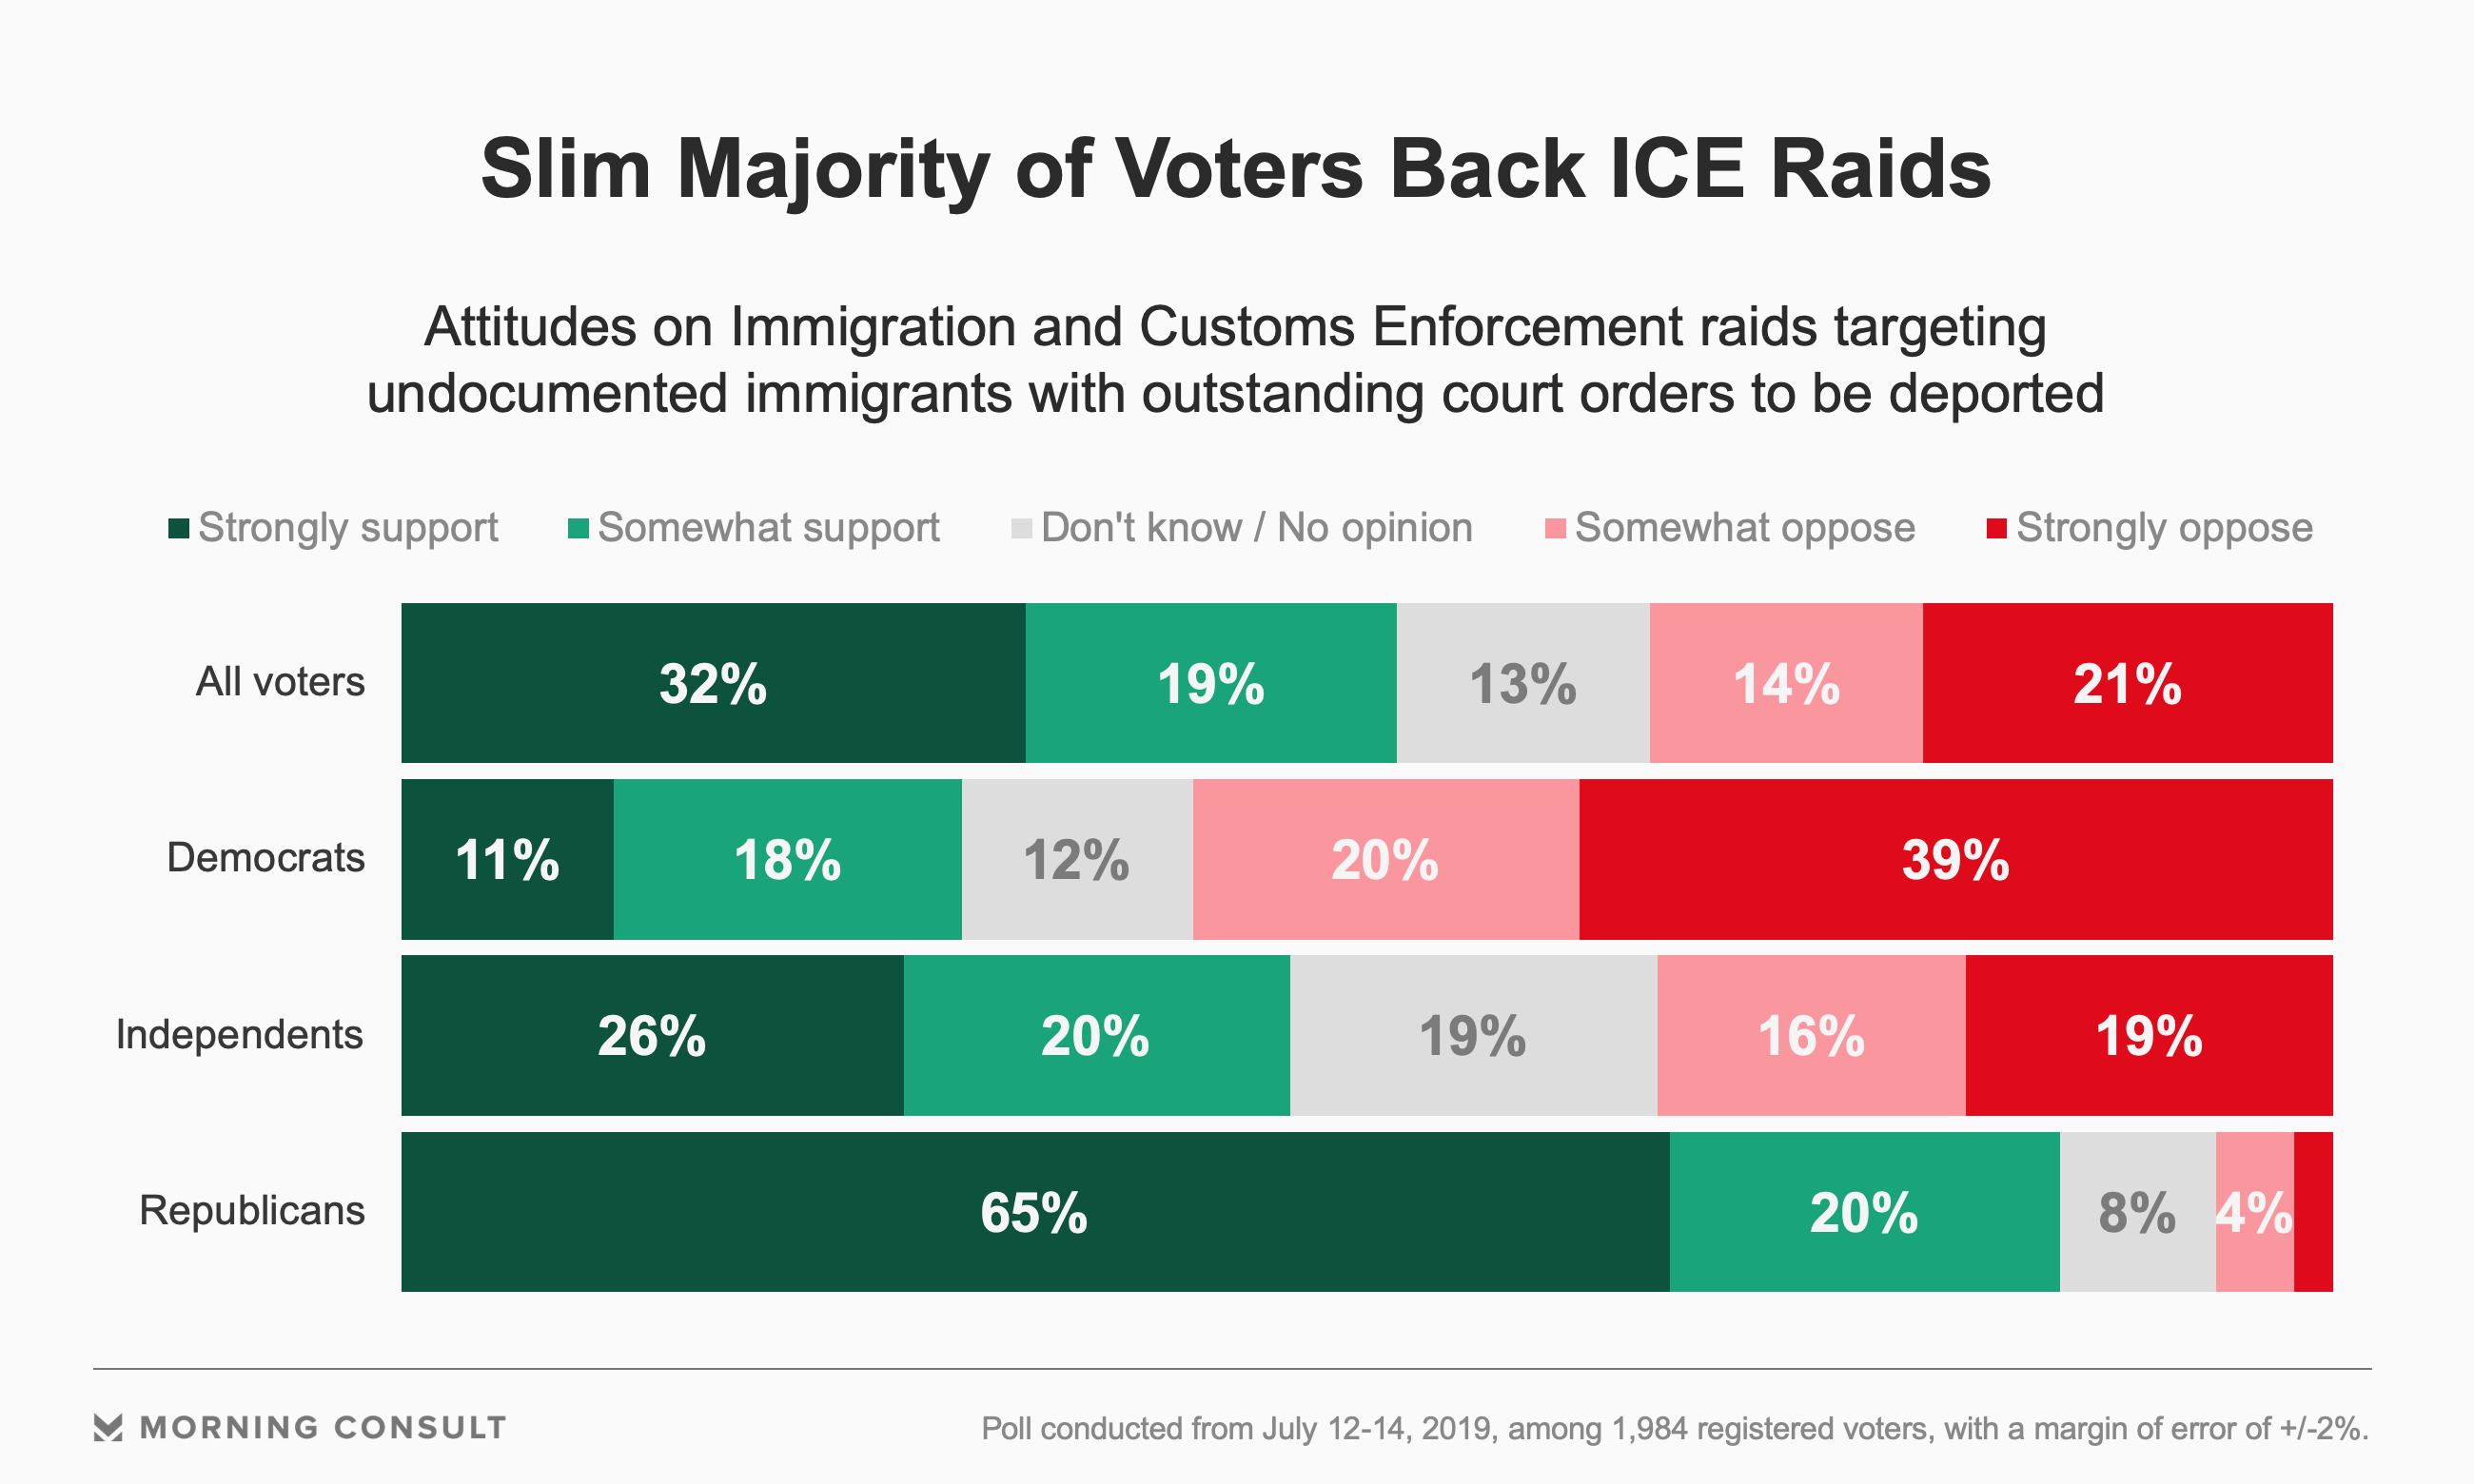 51% of Voters Support Planned ICE Raids